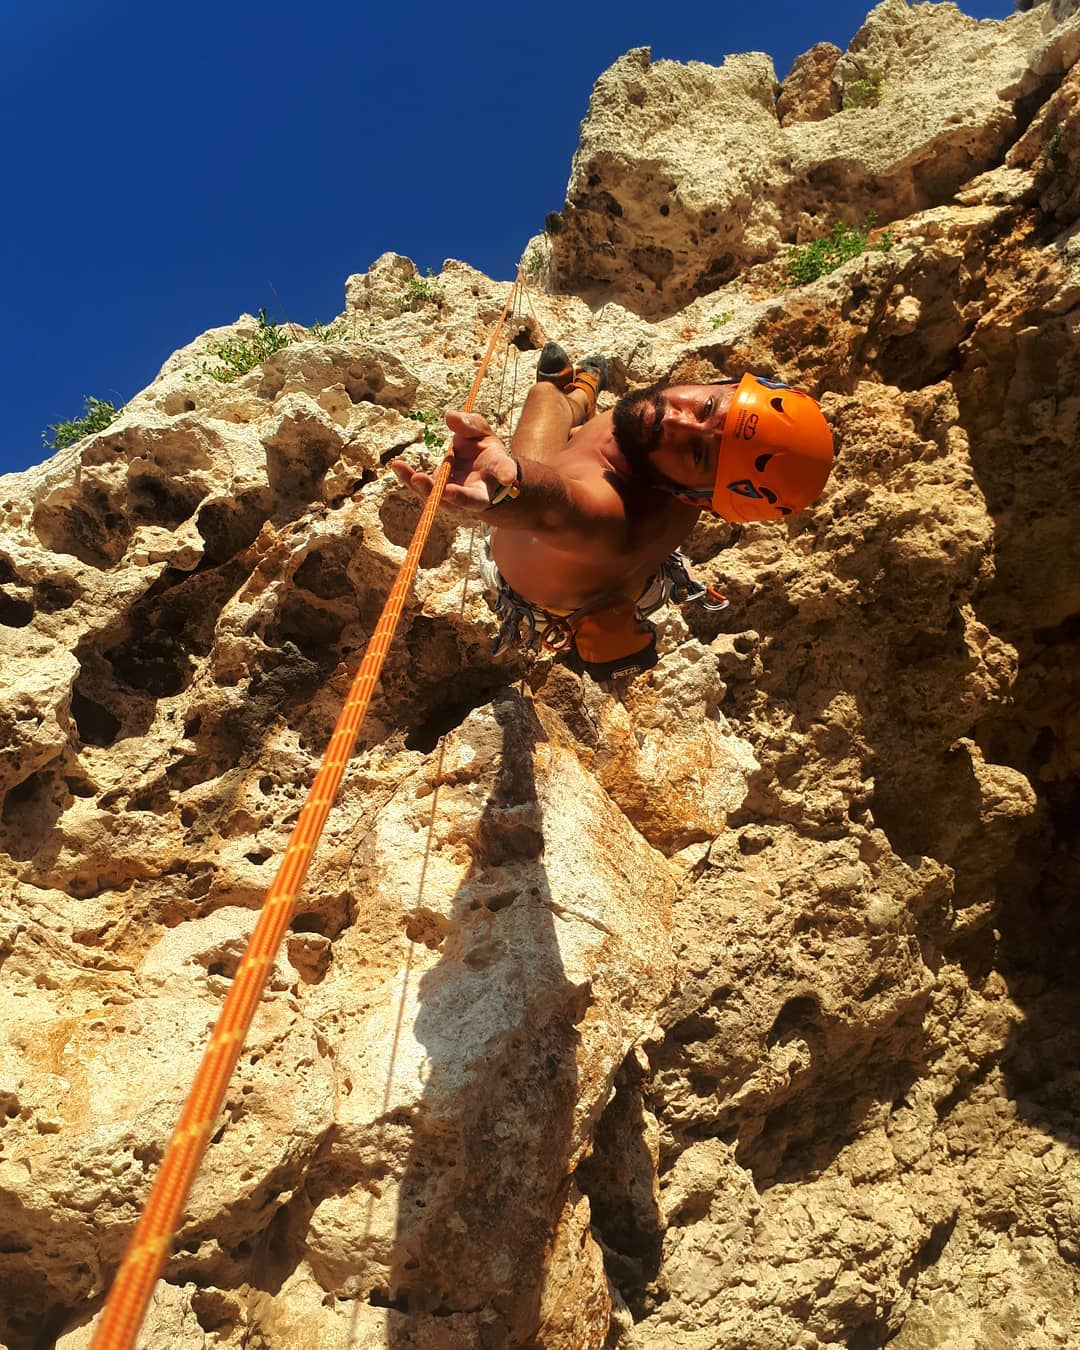 rock climbing in Malta is an exhilarating experience